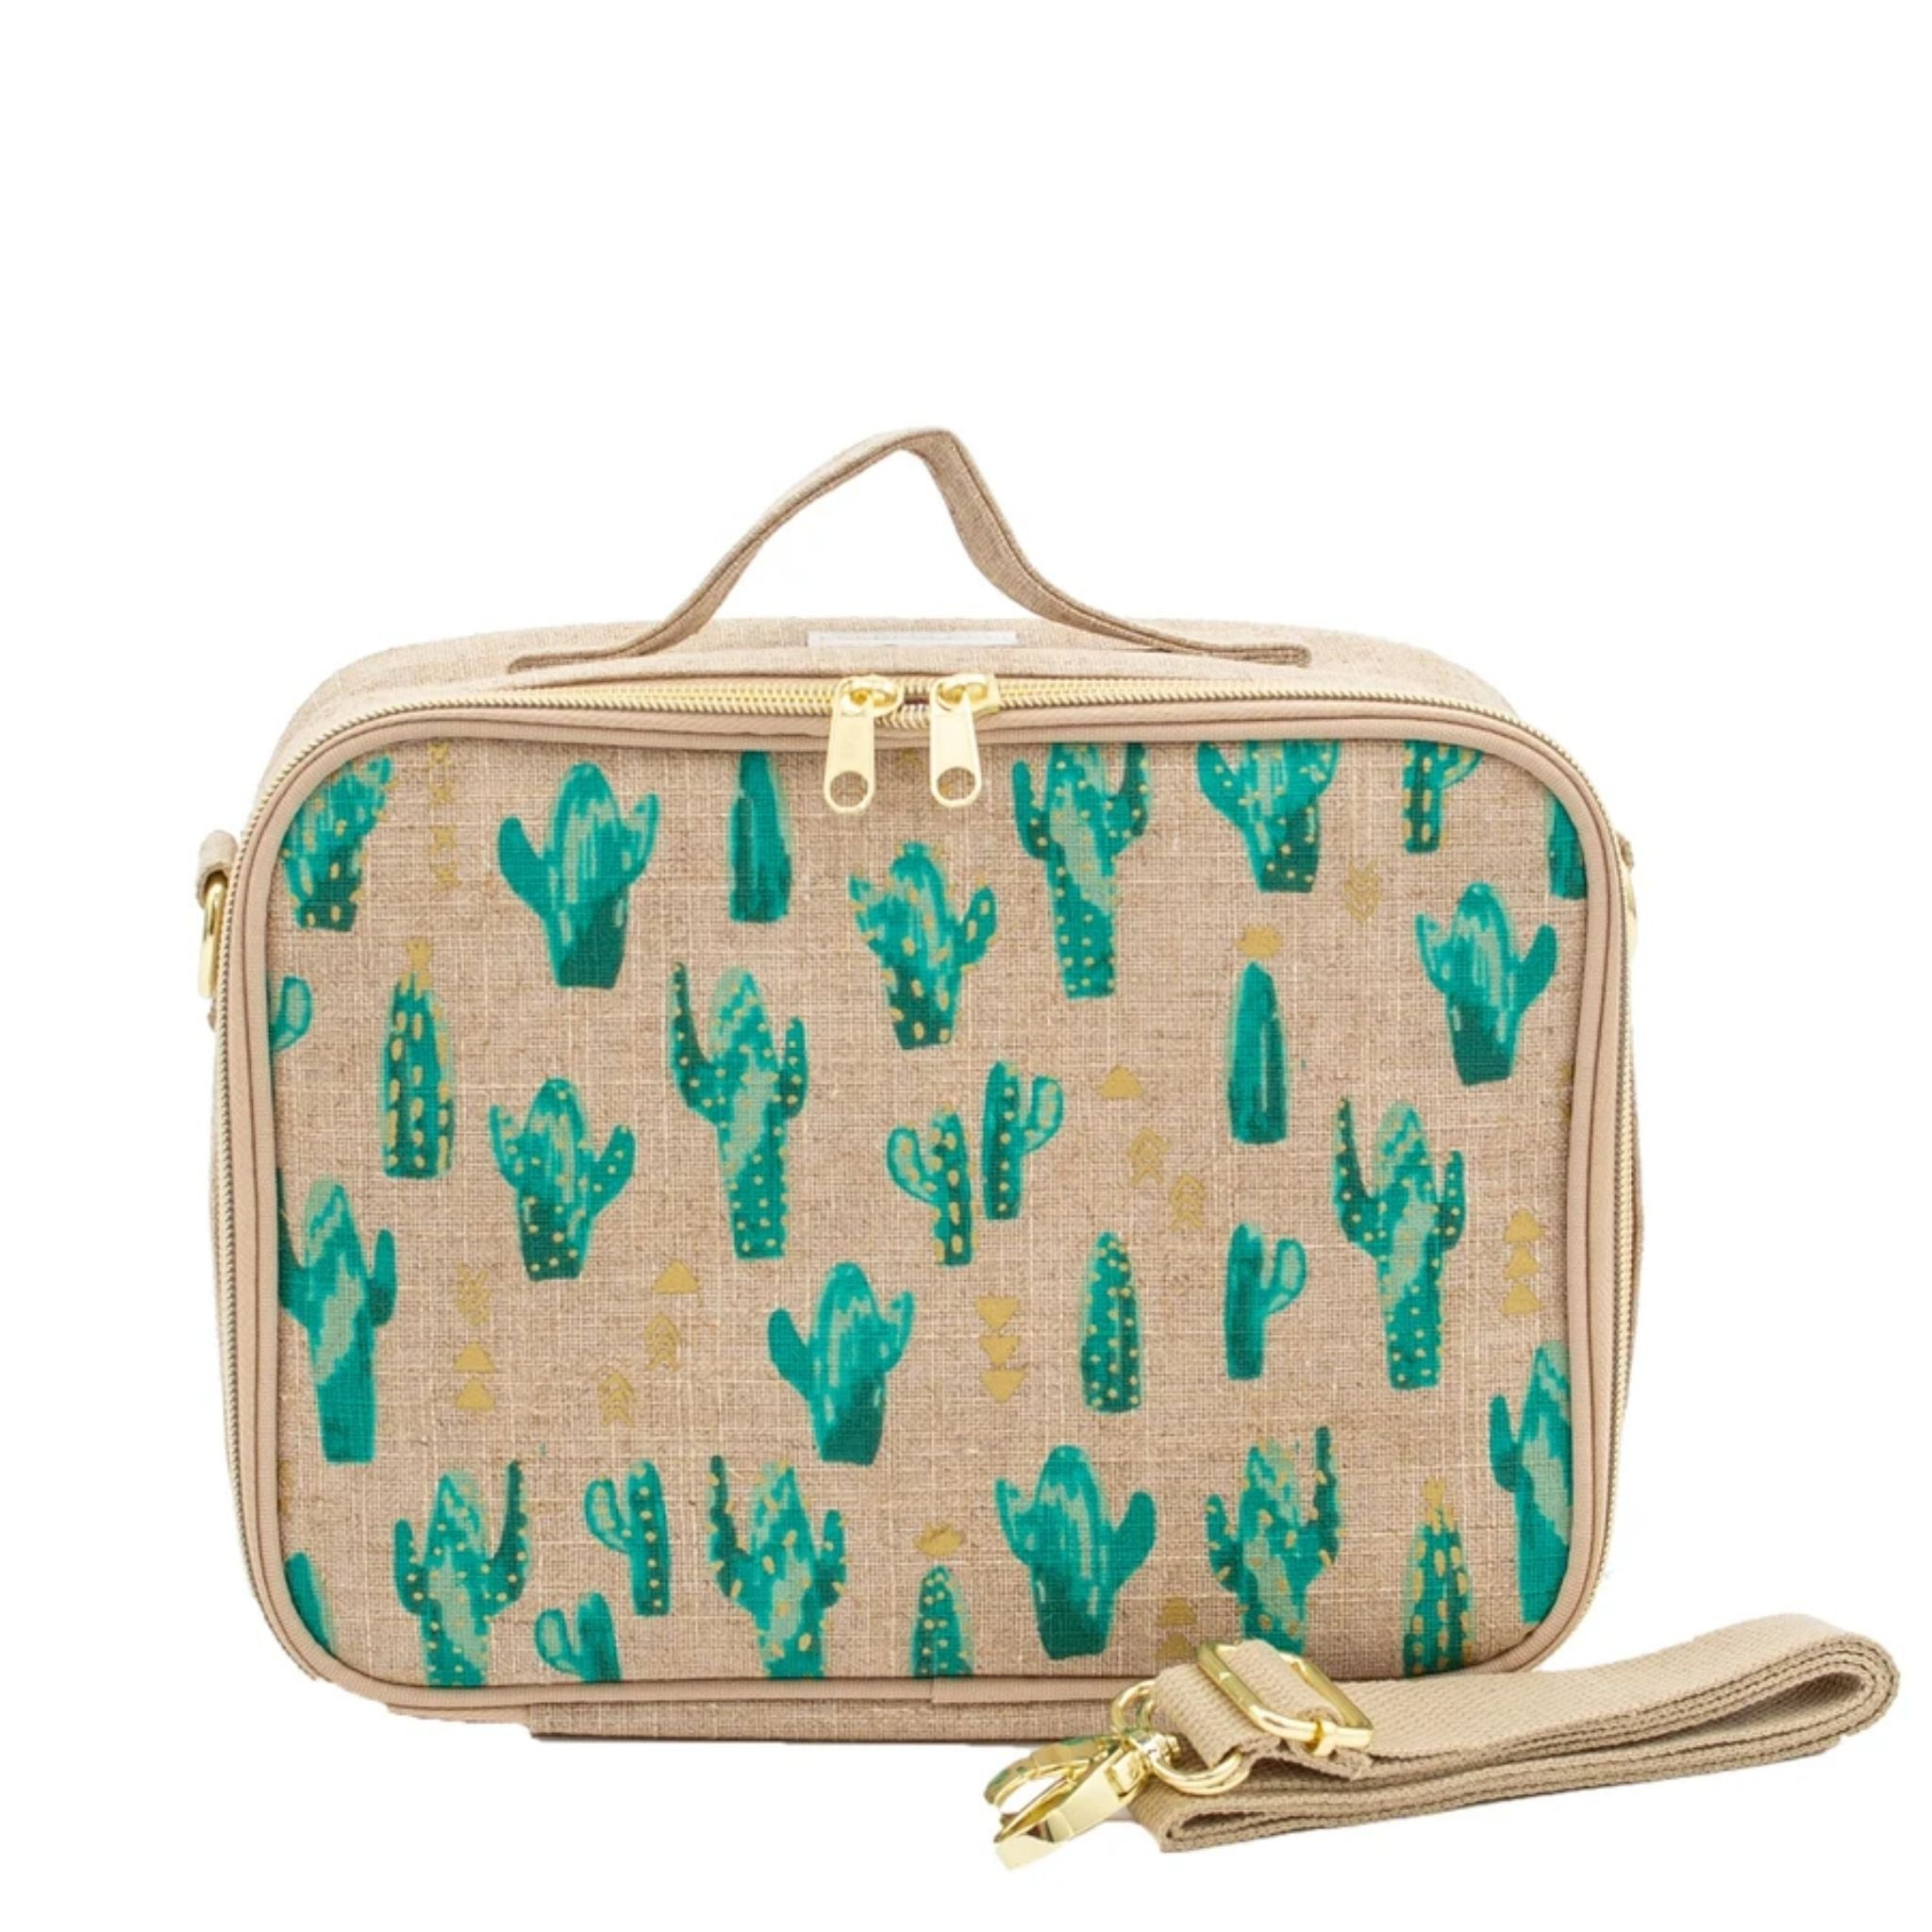 so young lunch bag cacti desert, tan and gold trim and handles, gold and green cactus print